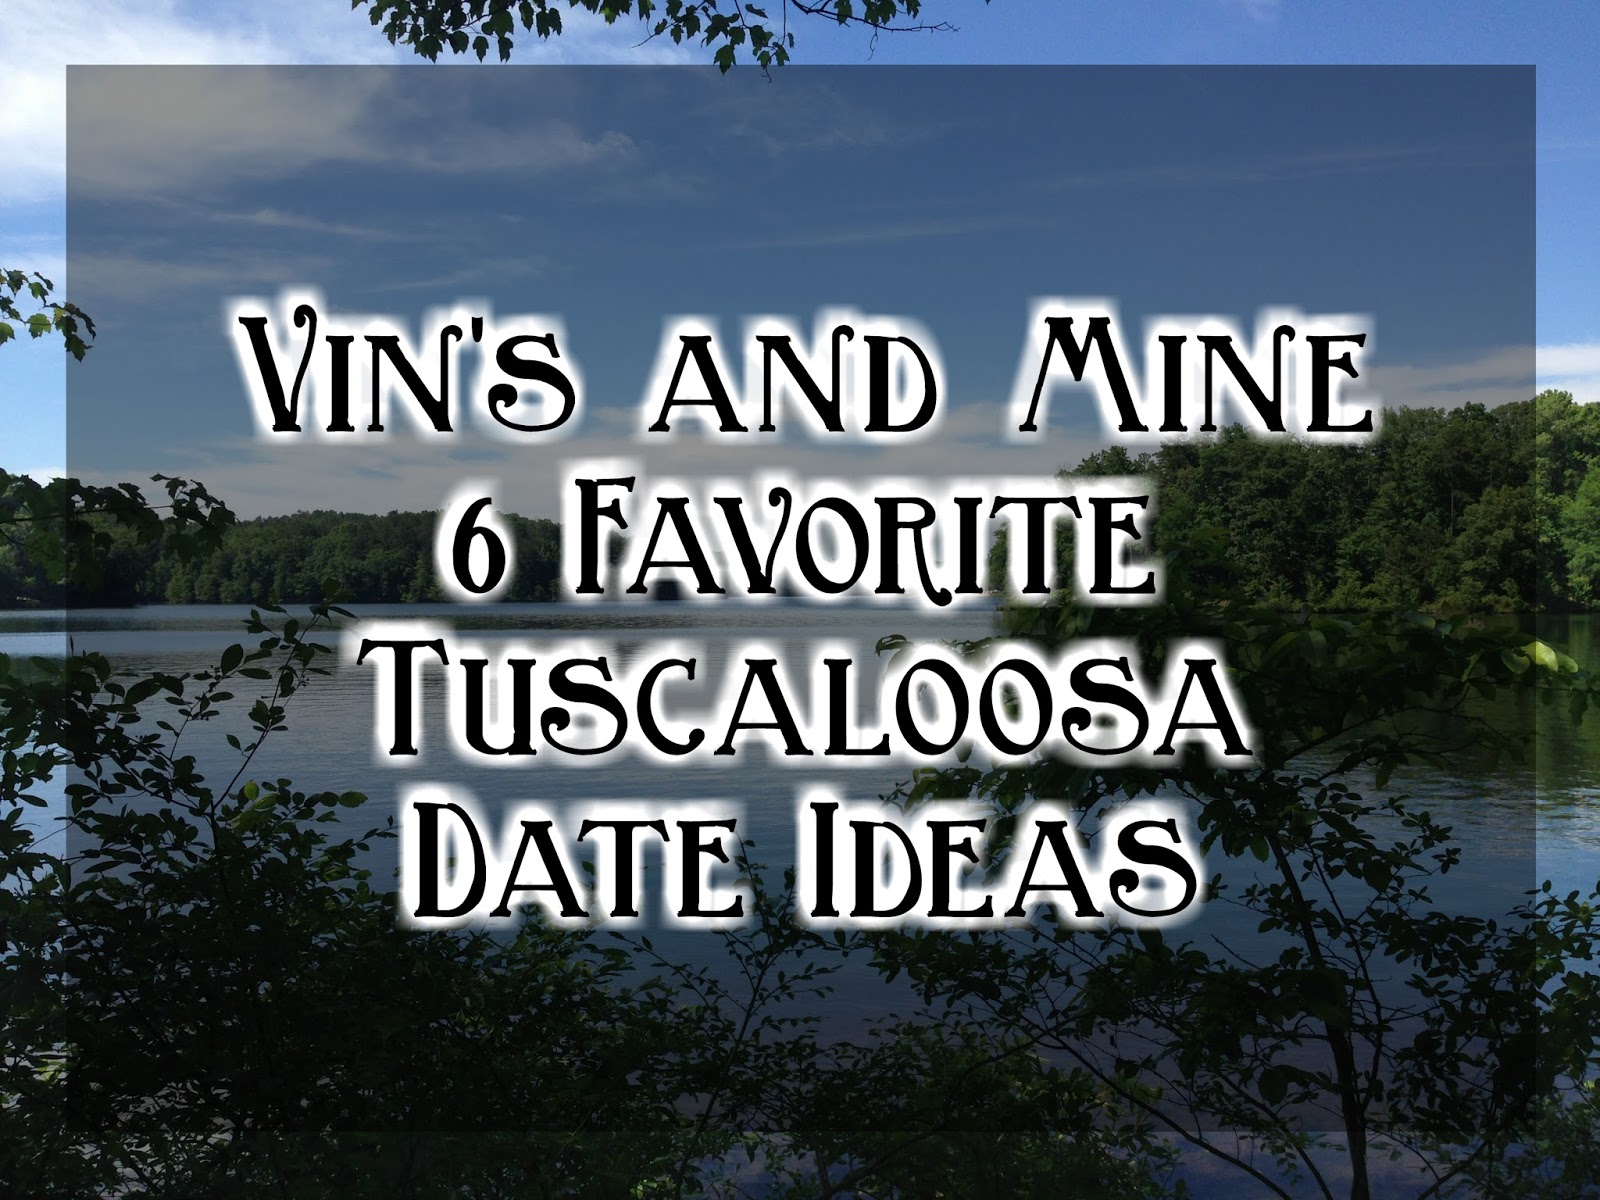 Vins And Mine 6 Favorite Tuscaloosa Date Ideas The Girl From Alabama